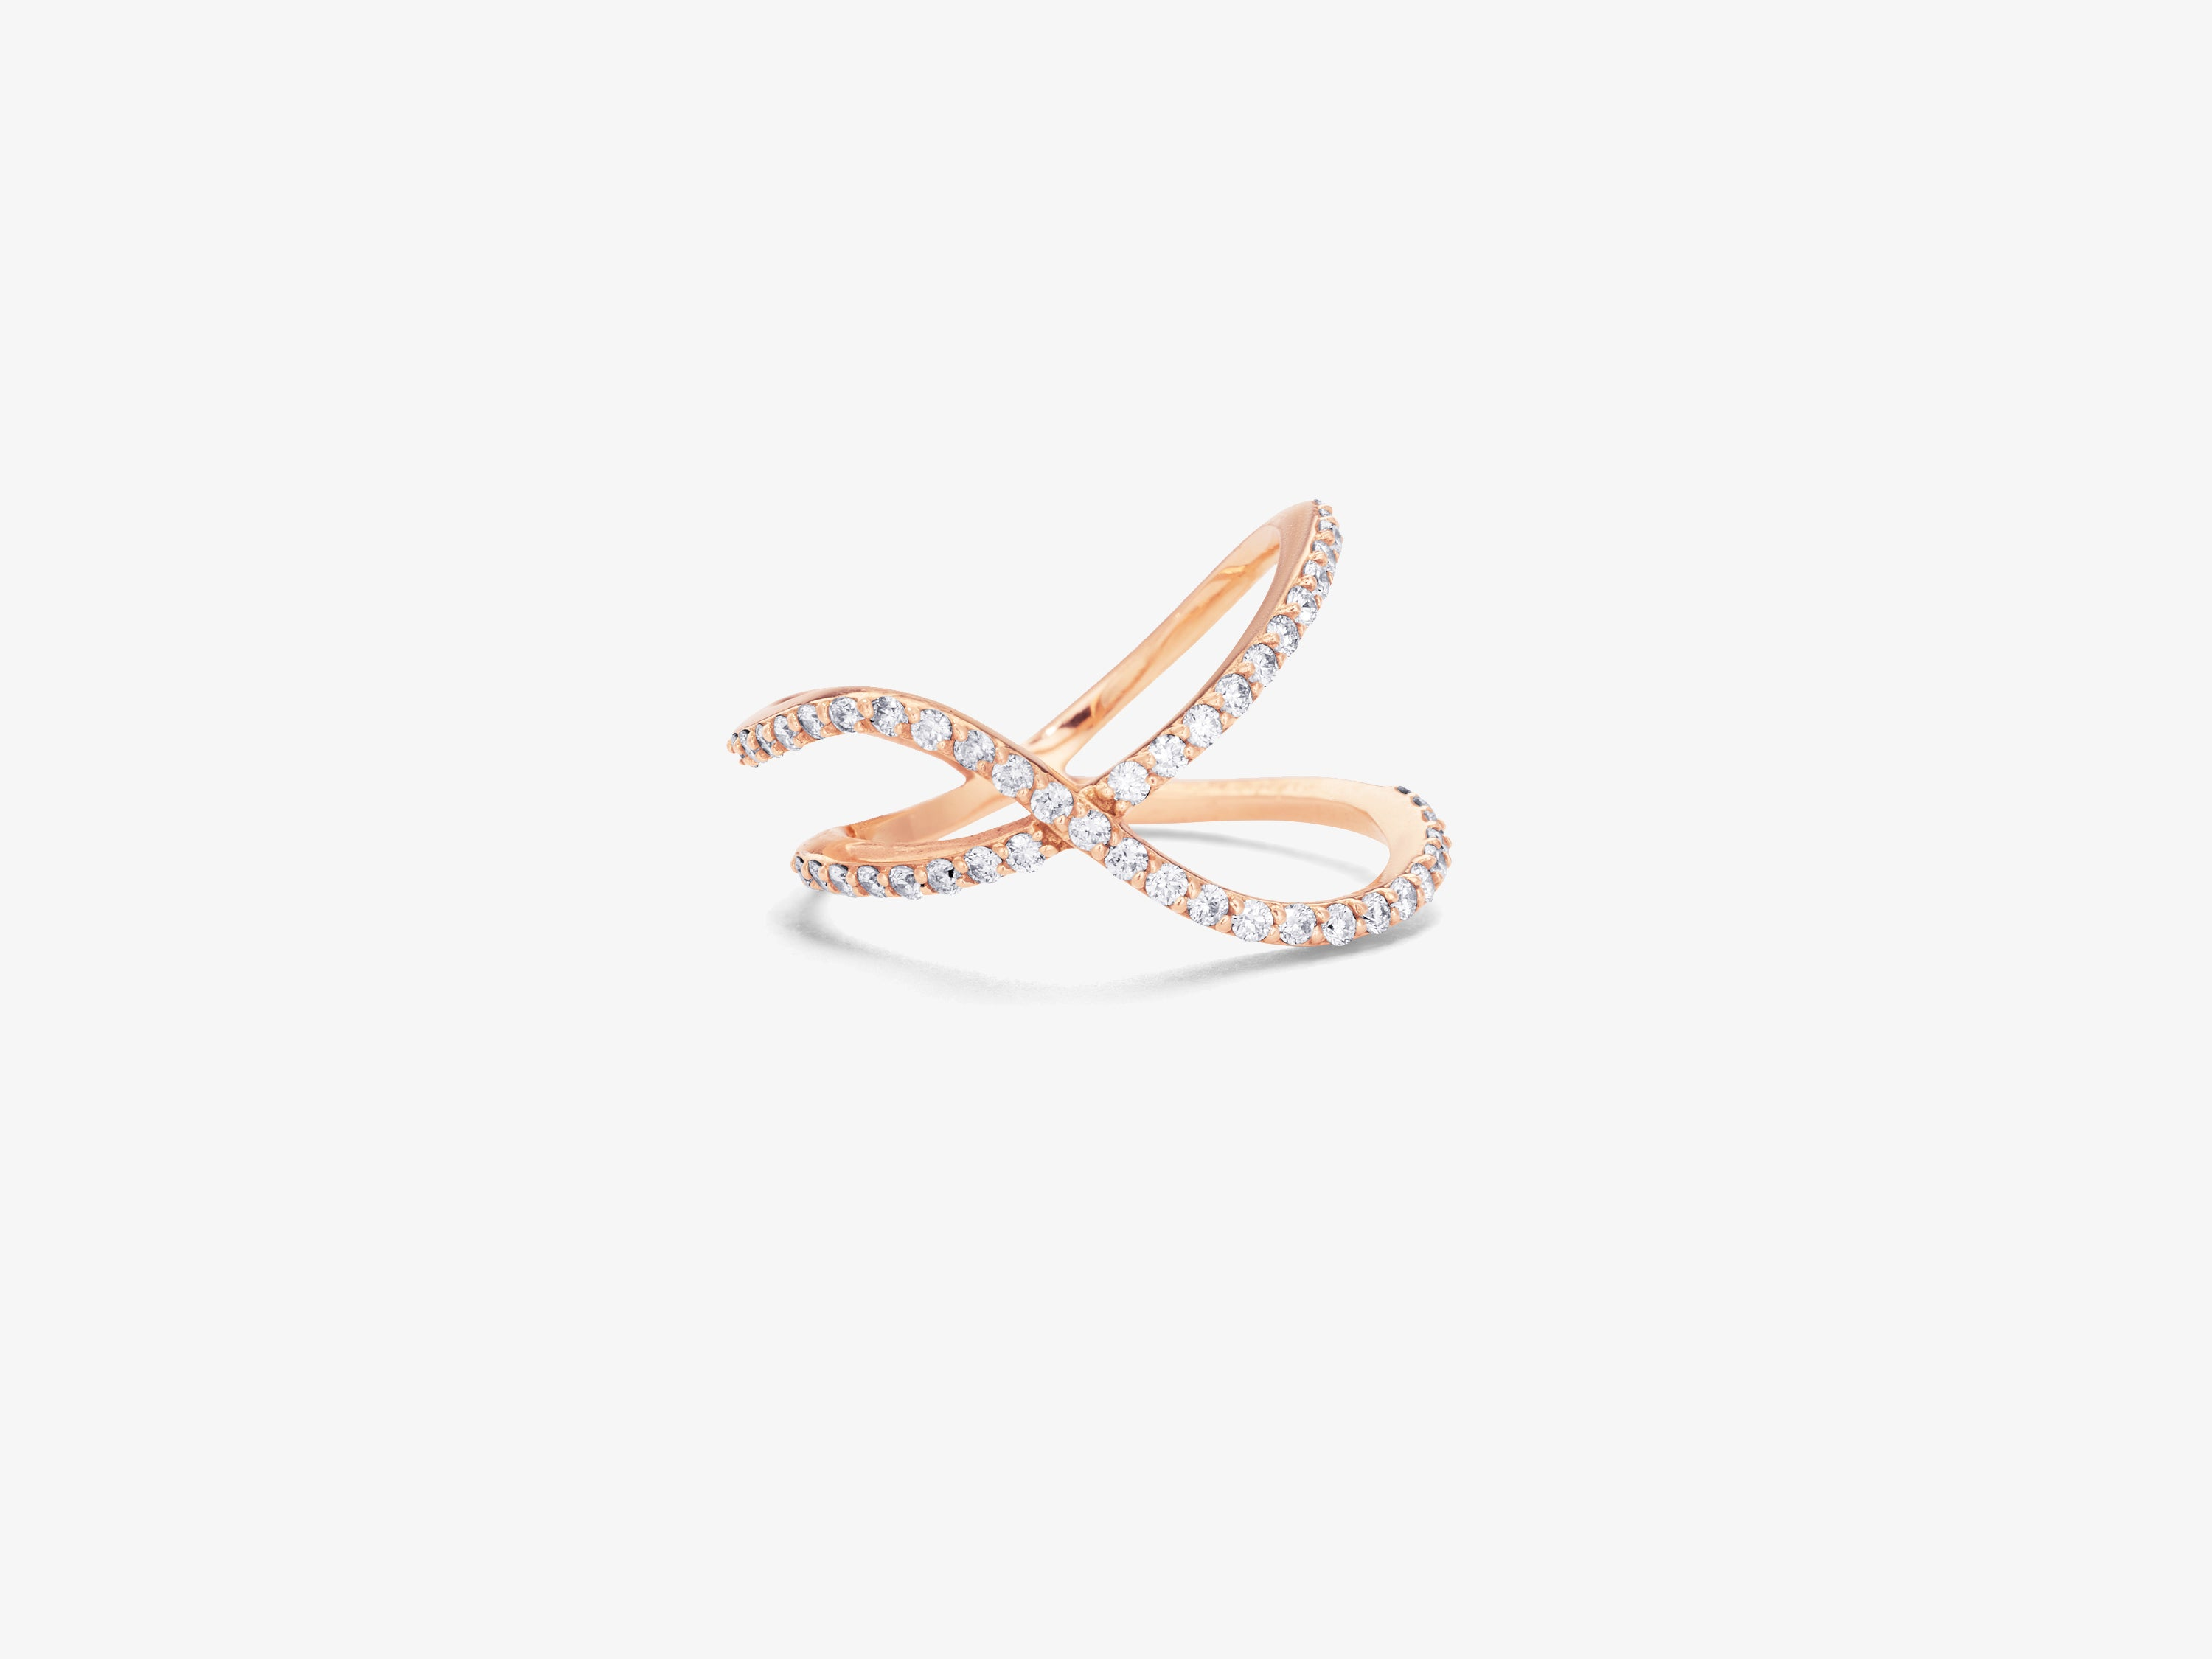 Flou Overlapping Two Row Ring with Diamond Pave